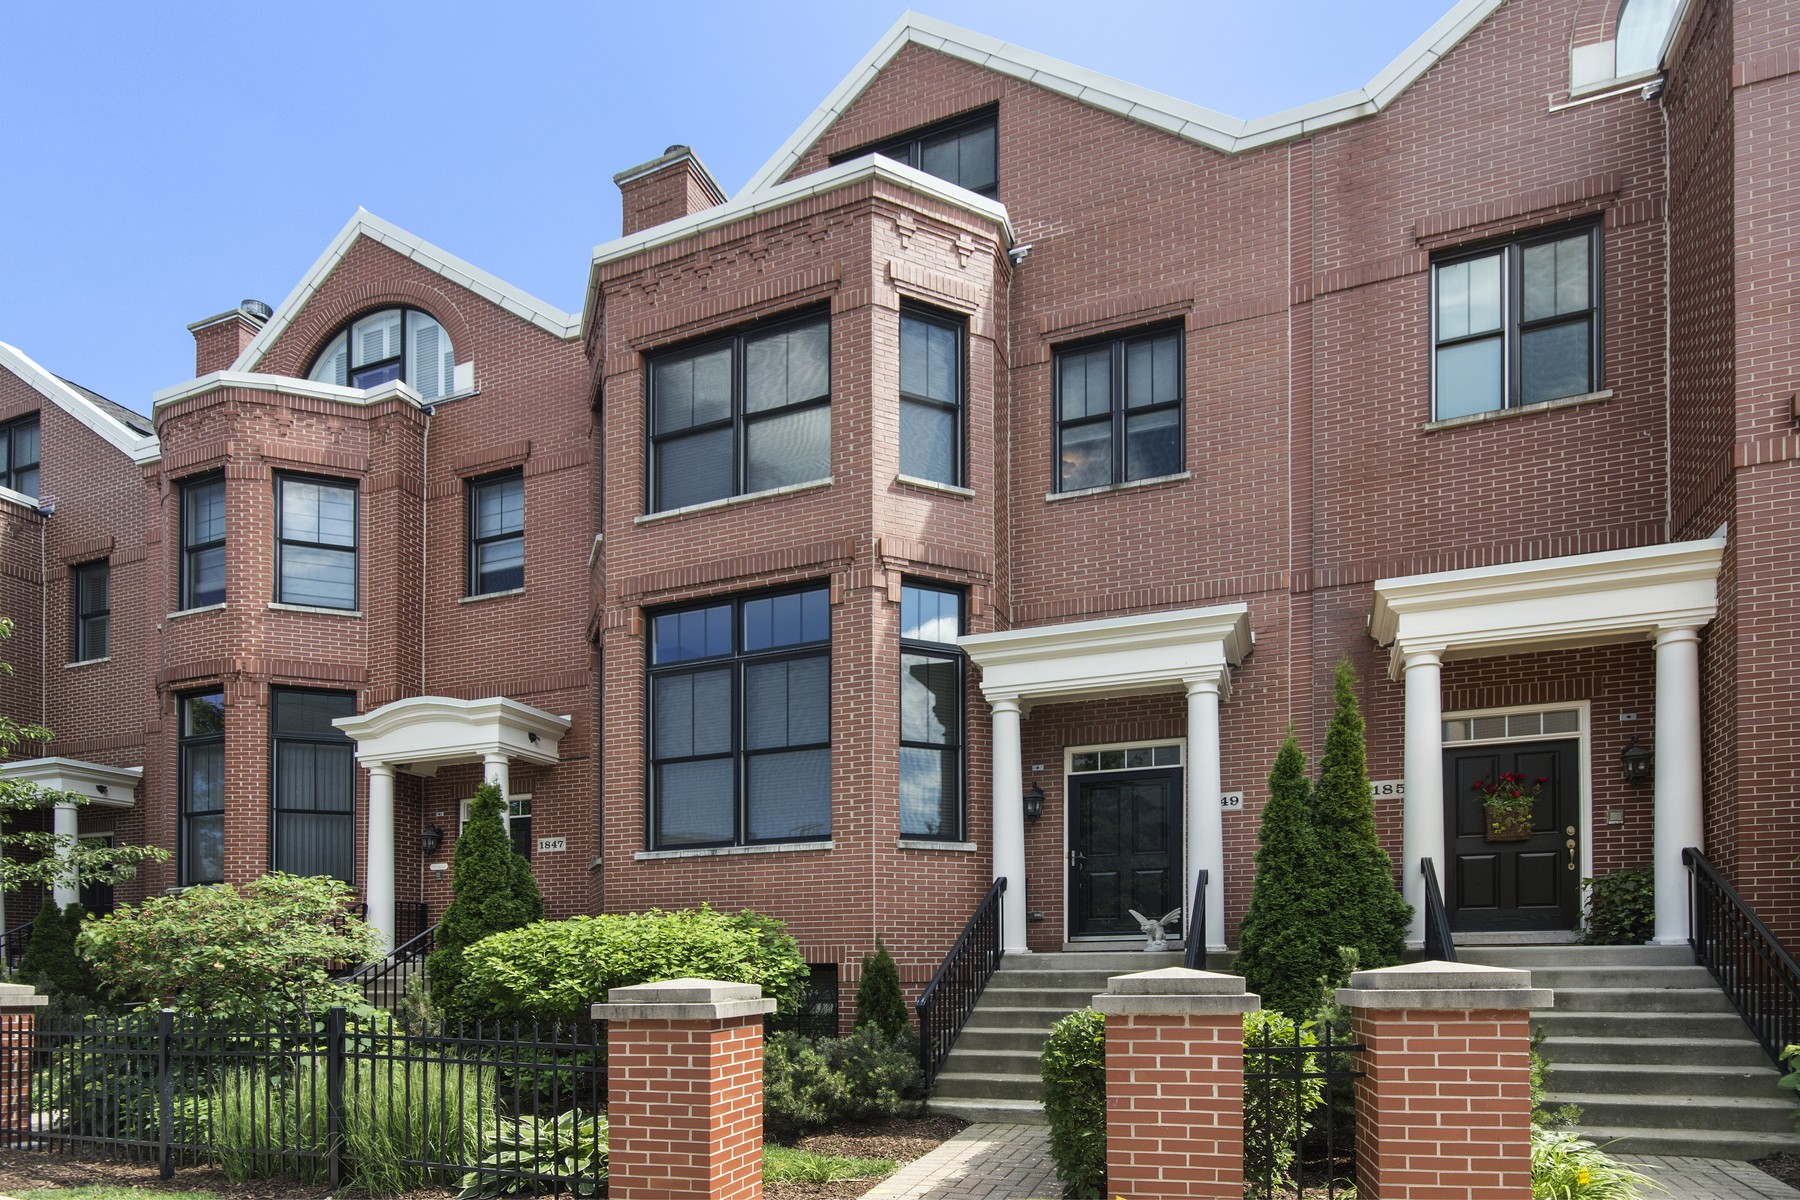 Moradia em banda para Venda às Stately Brick Town Home With Many Custom Features 1849 Admiral Court Glenview, Illinois, 60026 Estados Unidos